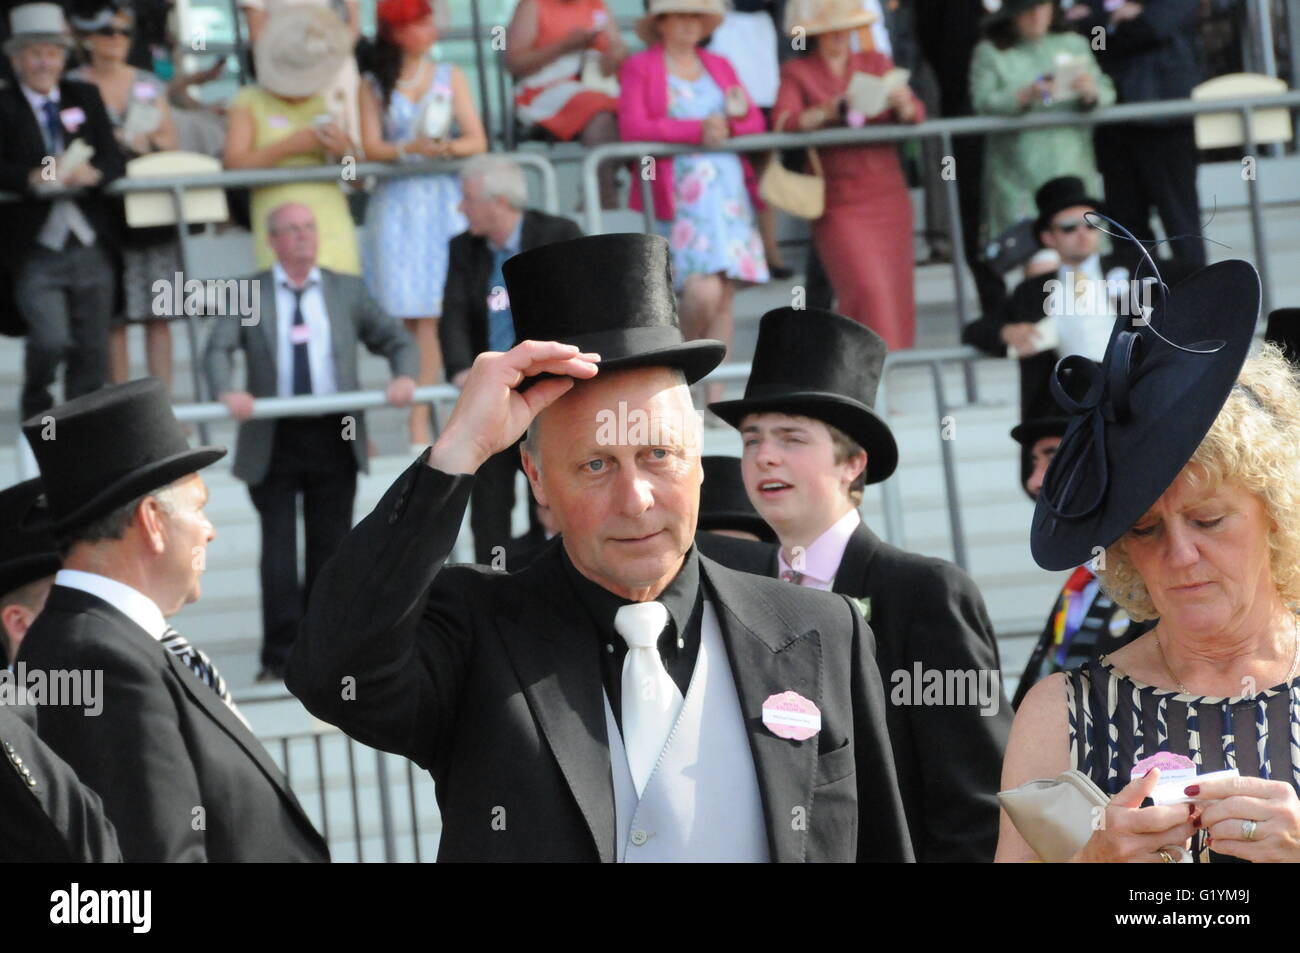 Race horse owners dressed-up, for the Royal Ascot, horse racing event - Stock Image